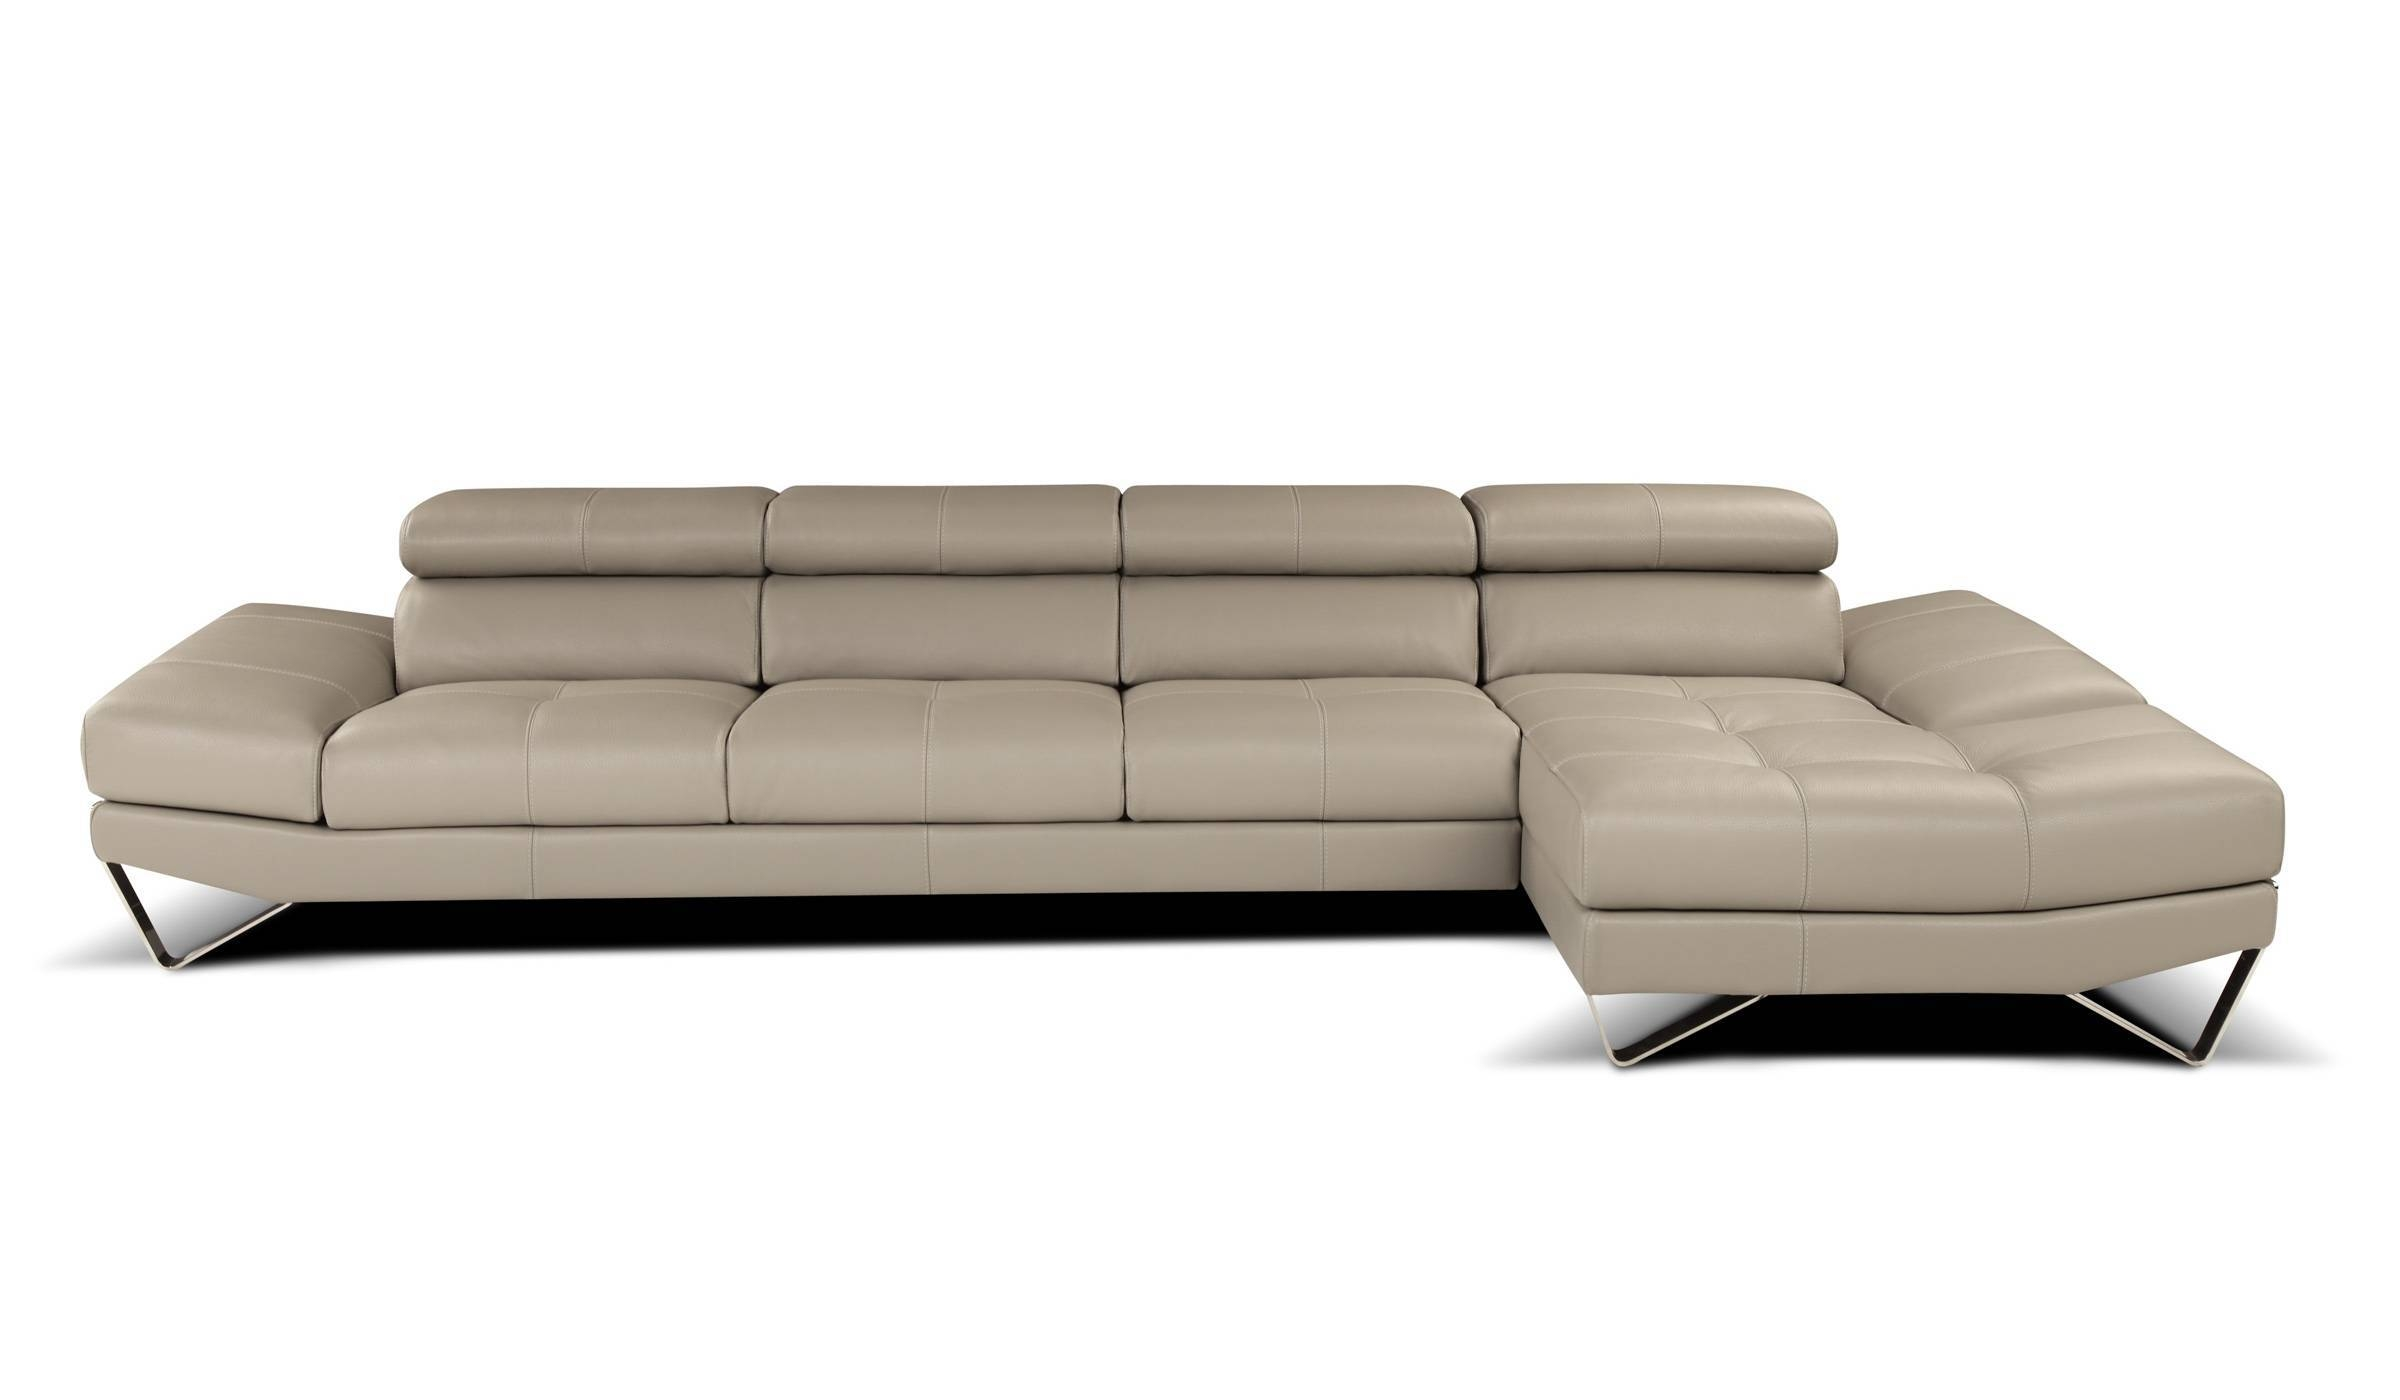 Sophisticated All Italian Leather Sectional Sofa Spokane regarding High End Sofa (Image 27 of 30)